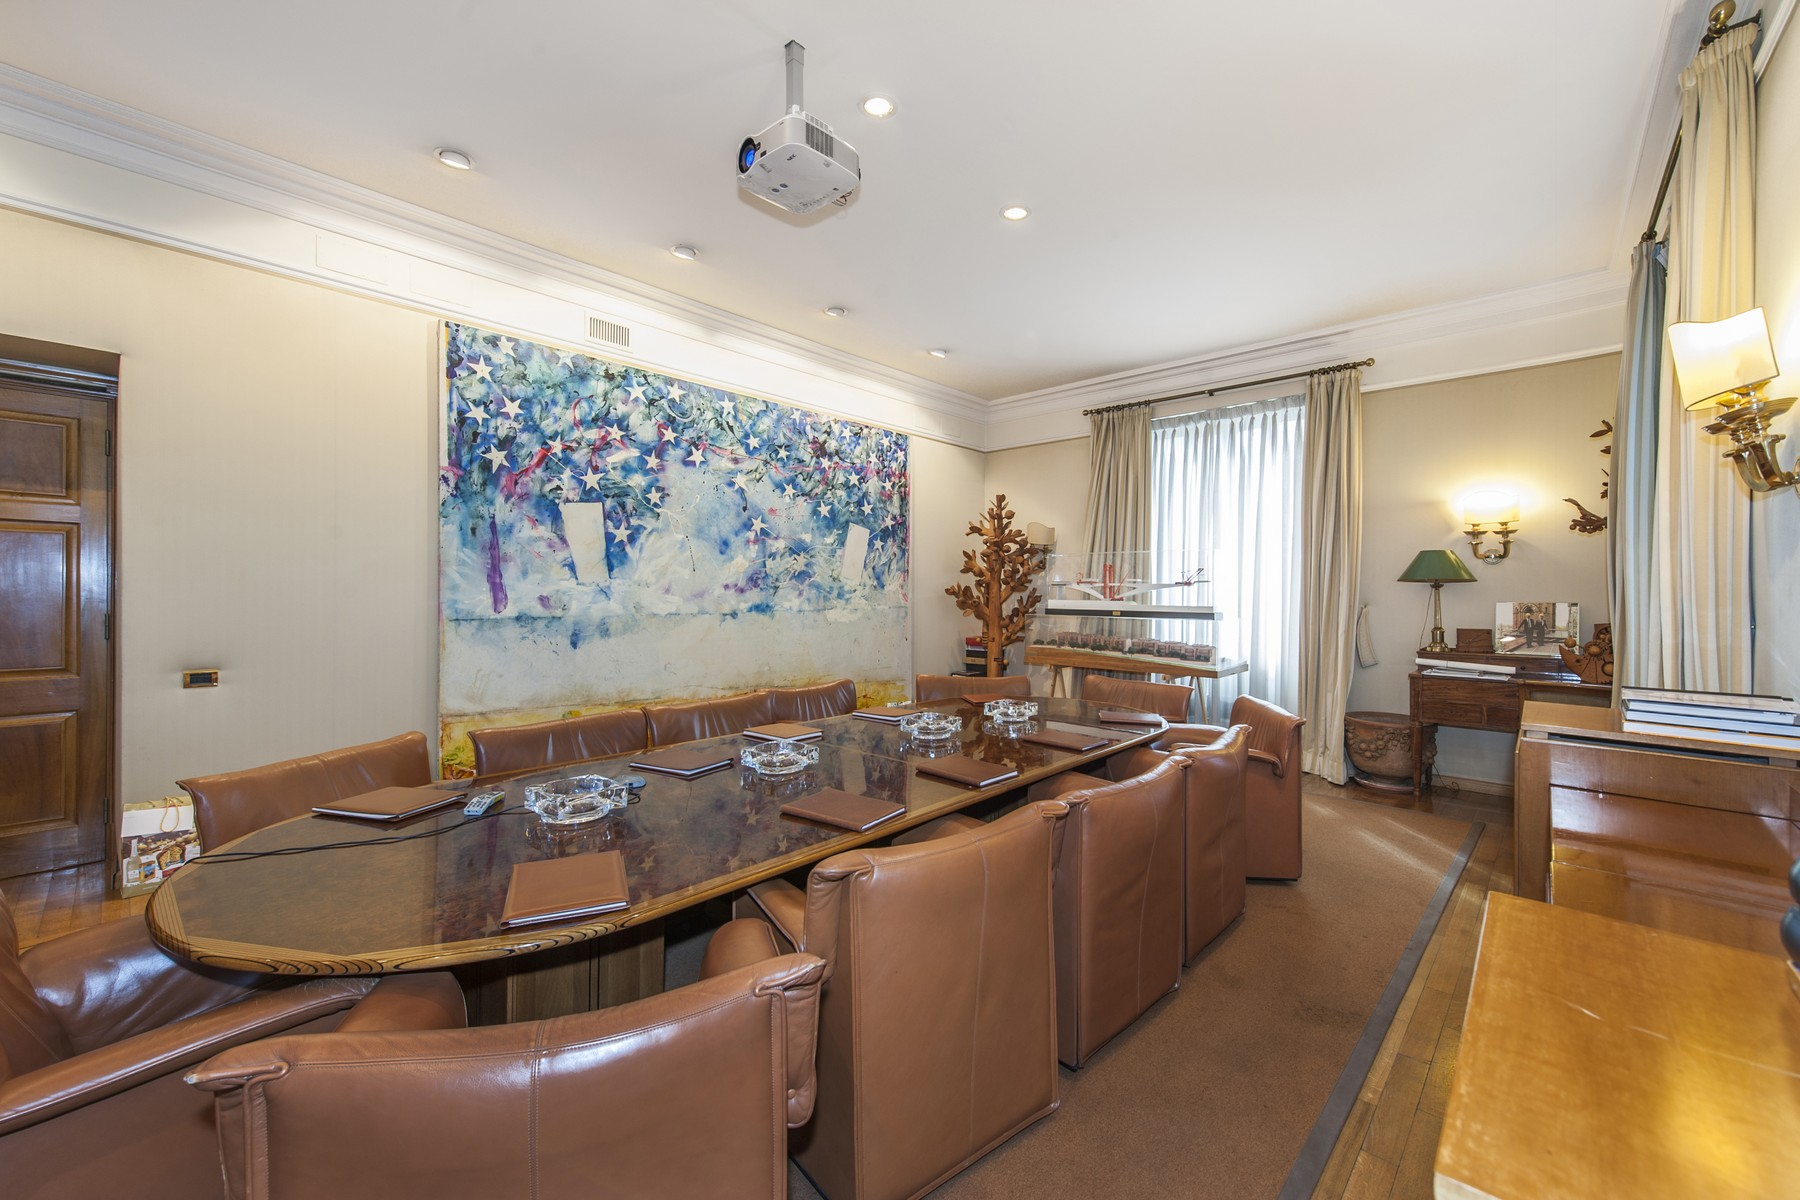 Apartment for Rent at Executive Offices in the Parioli neighbourhood Via Antonio Stoppani Rome, 00197 Italy